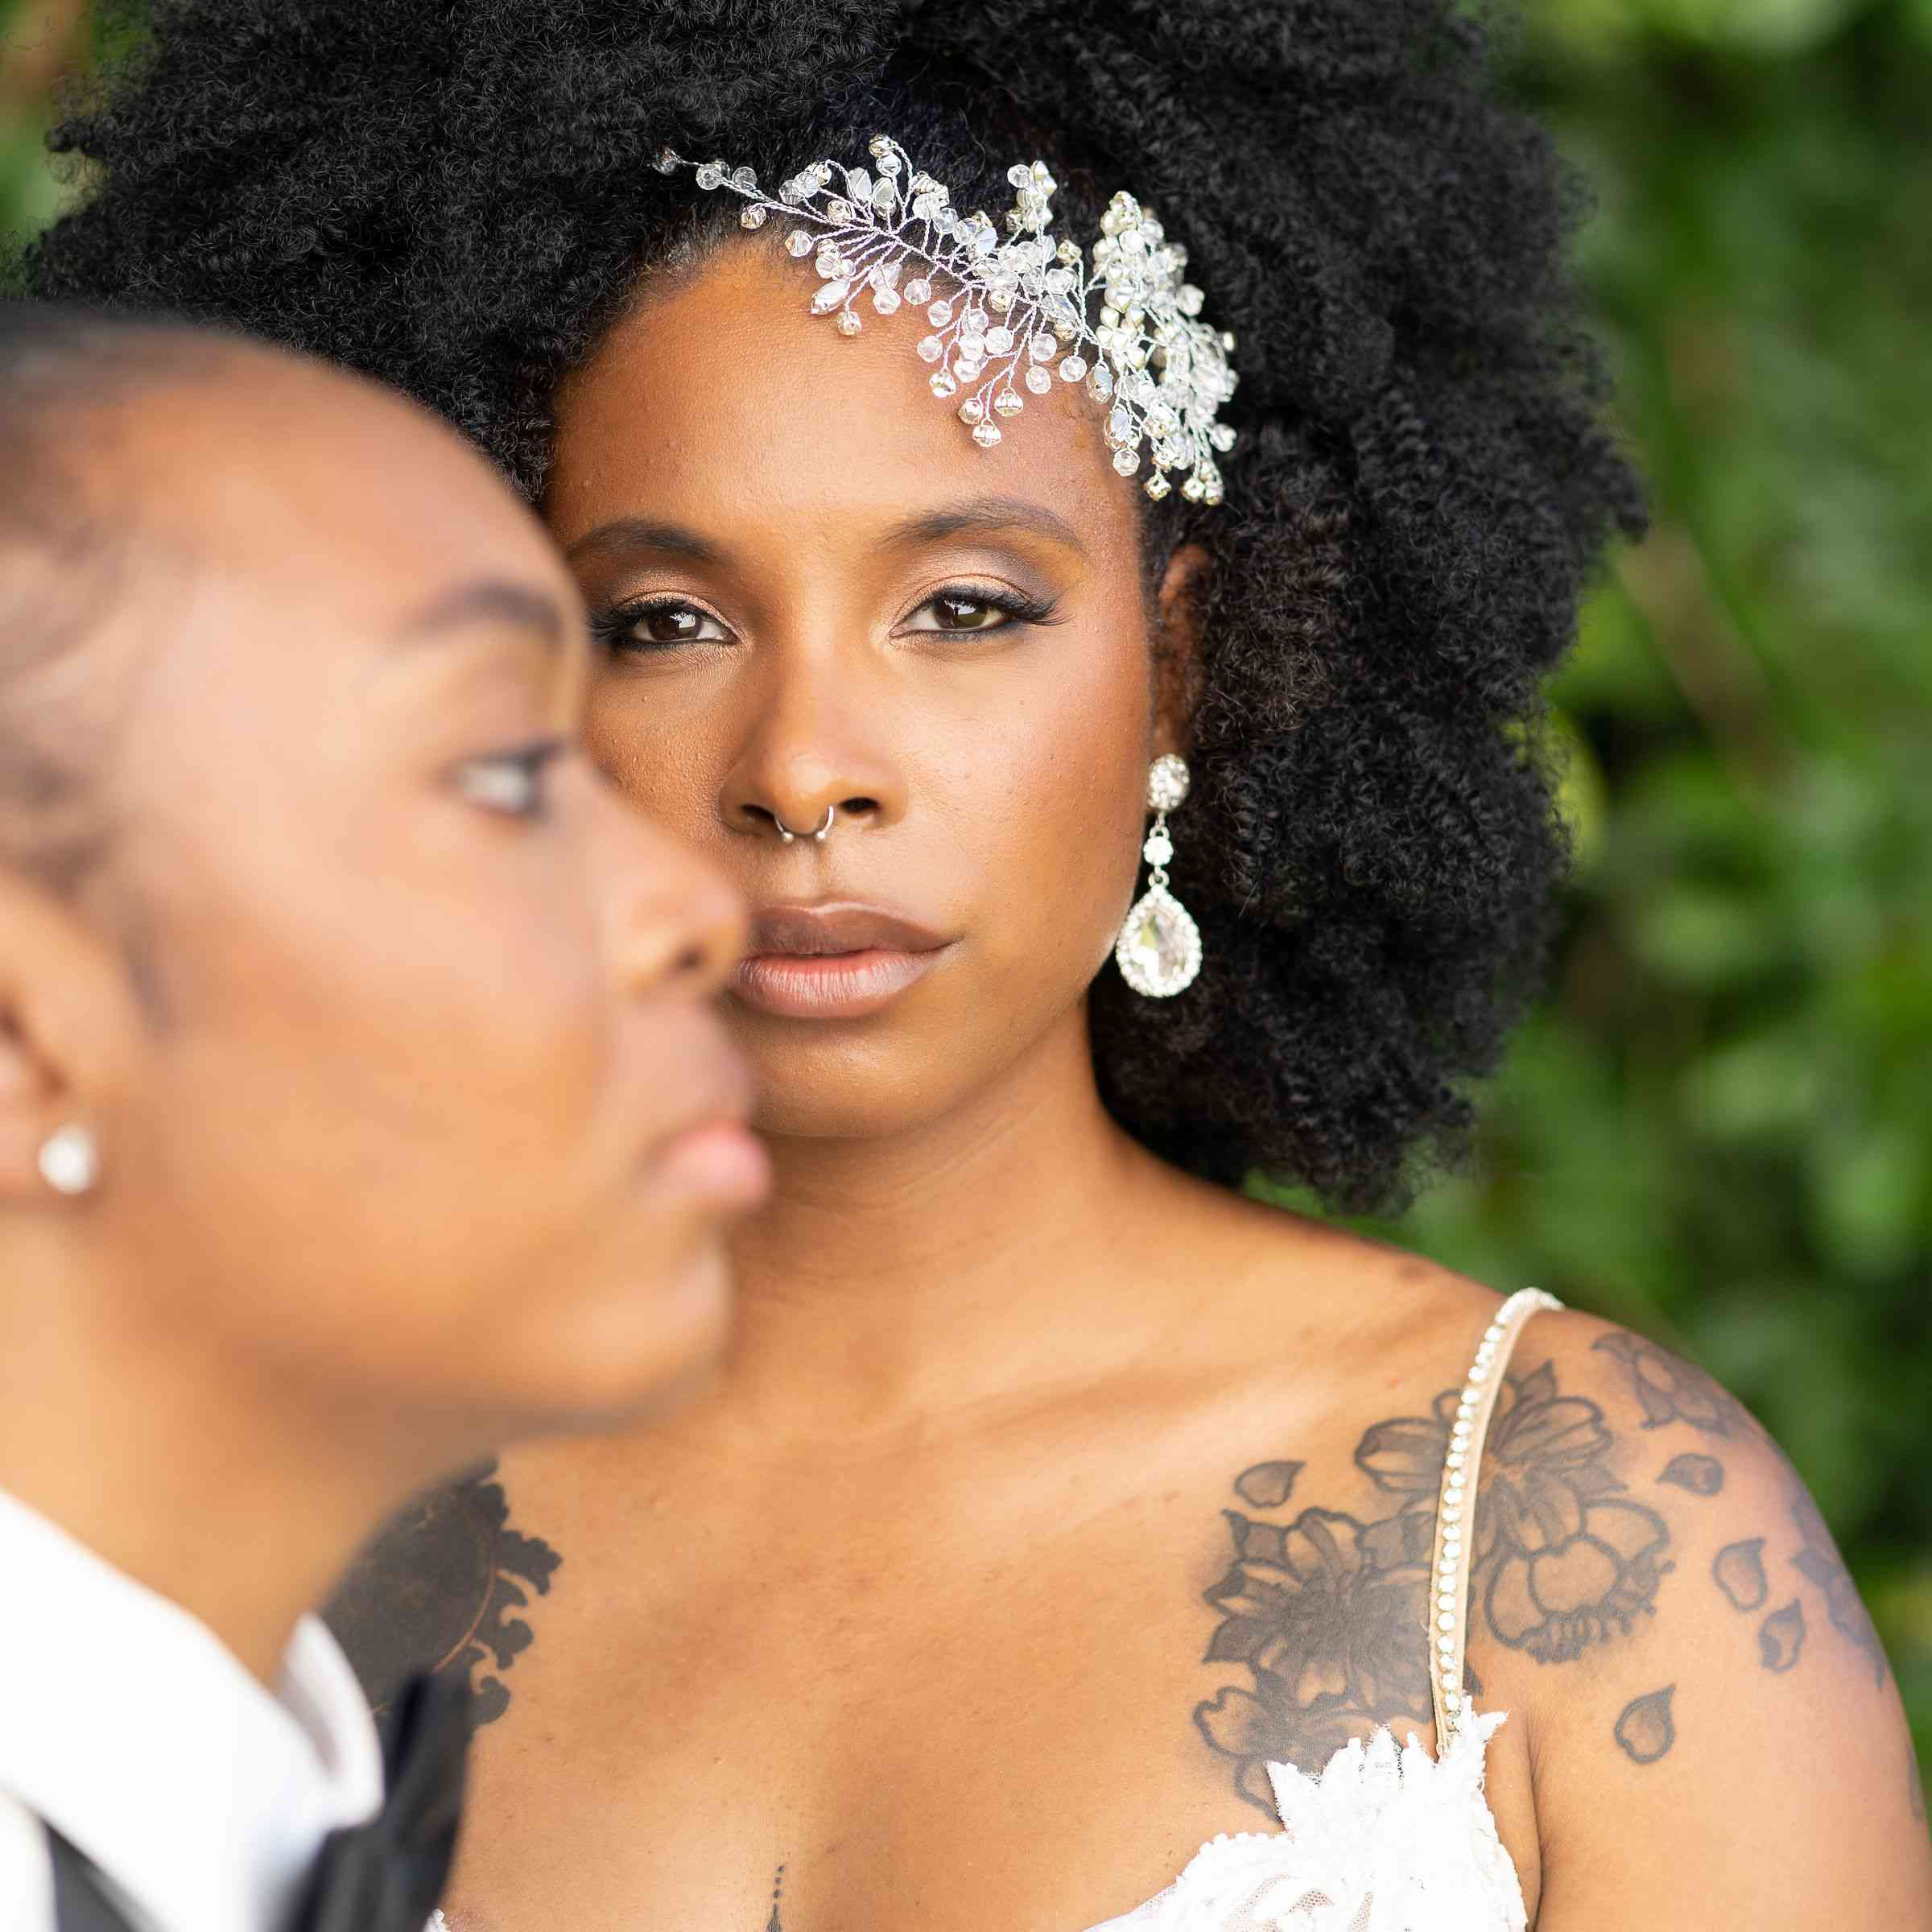 Bride with powerful shoulder tattoo